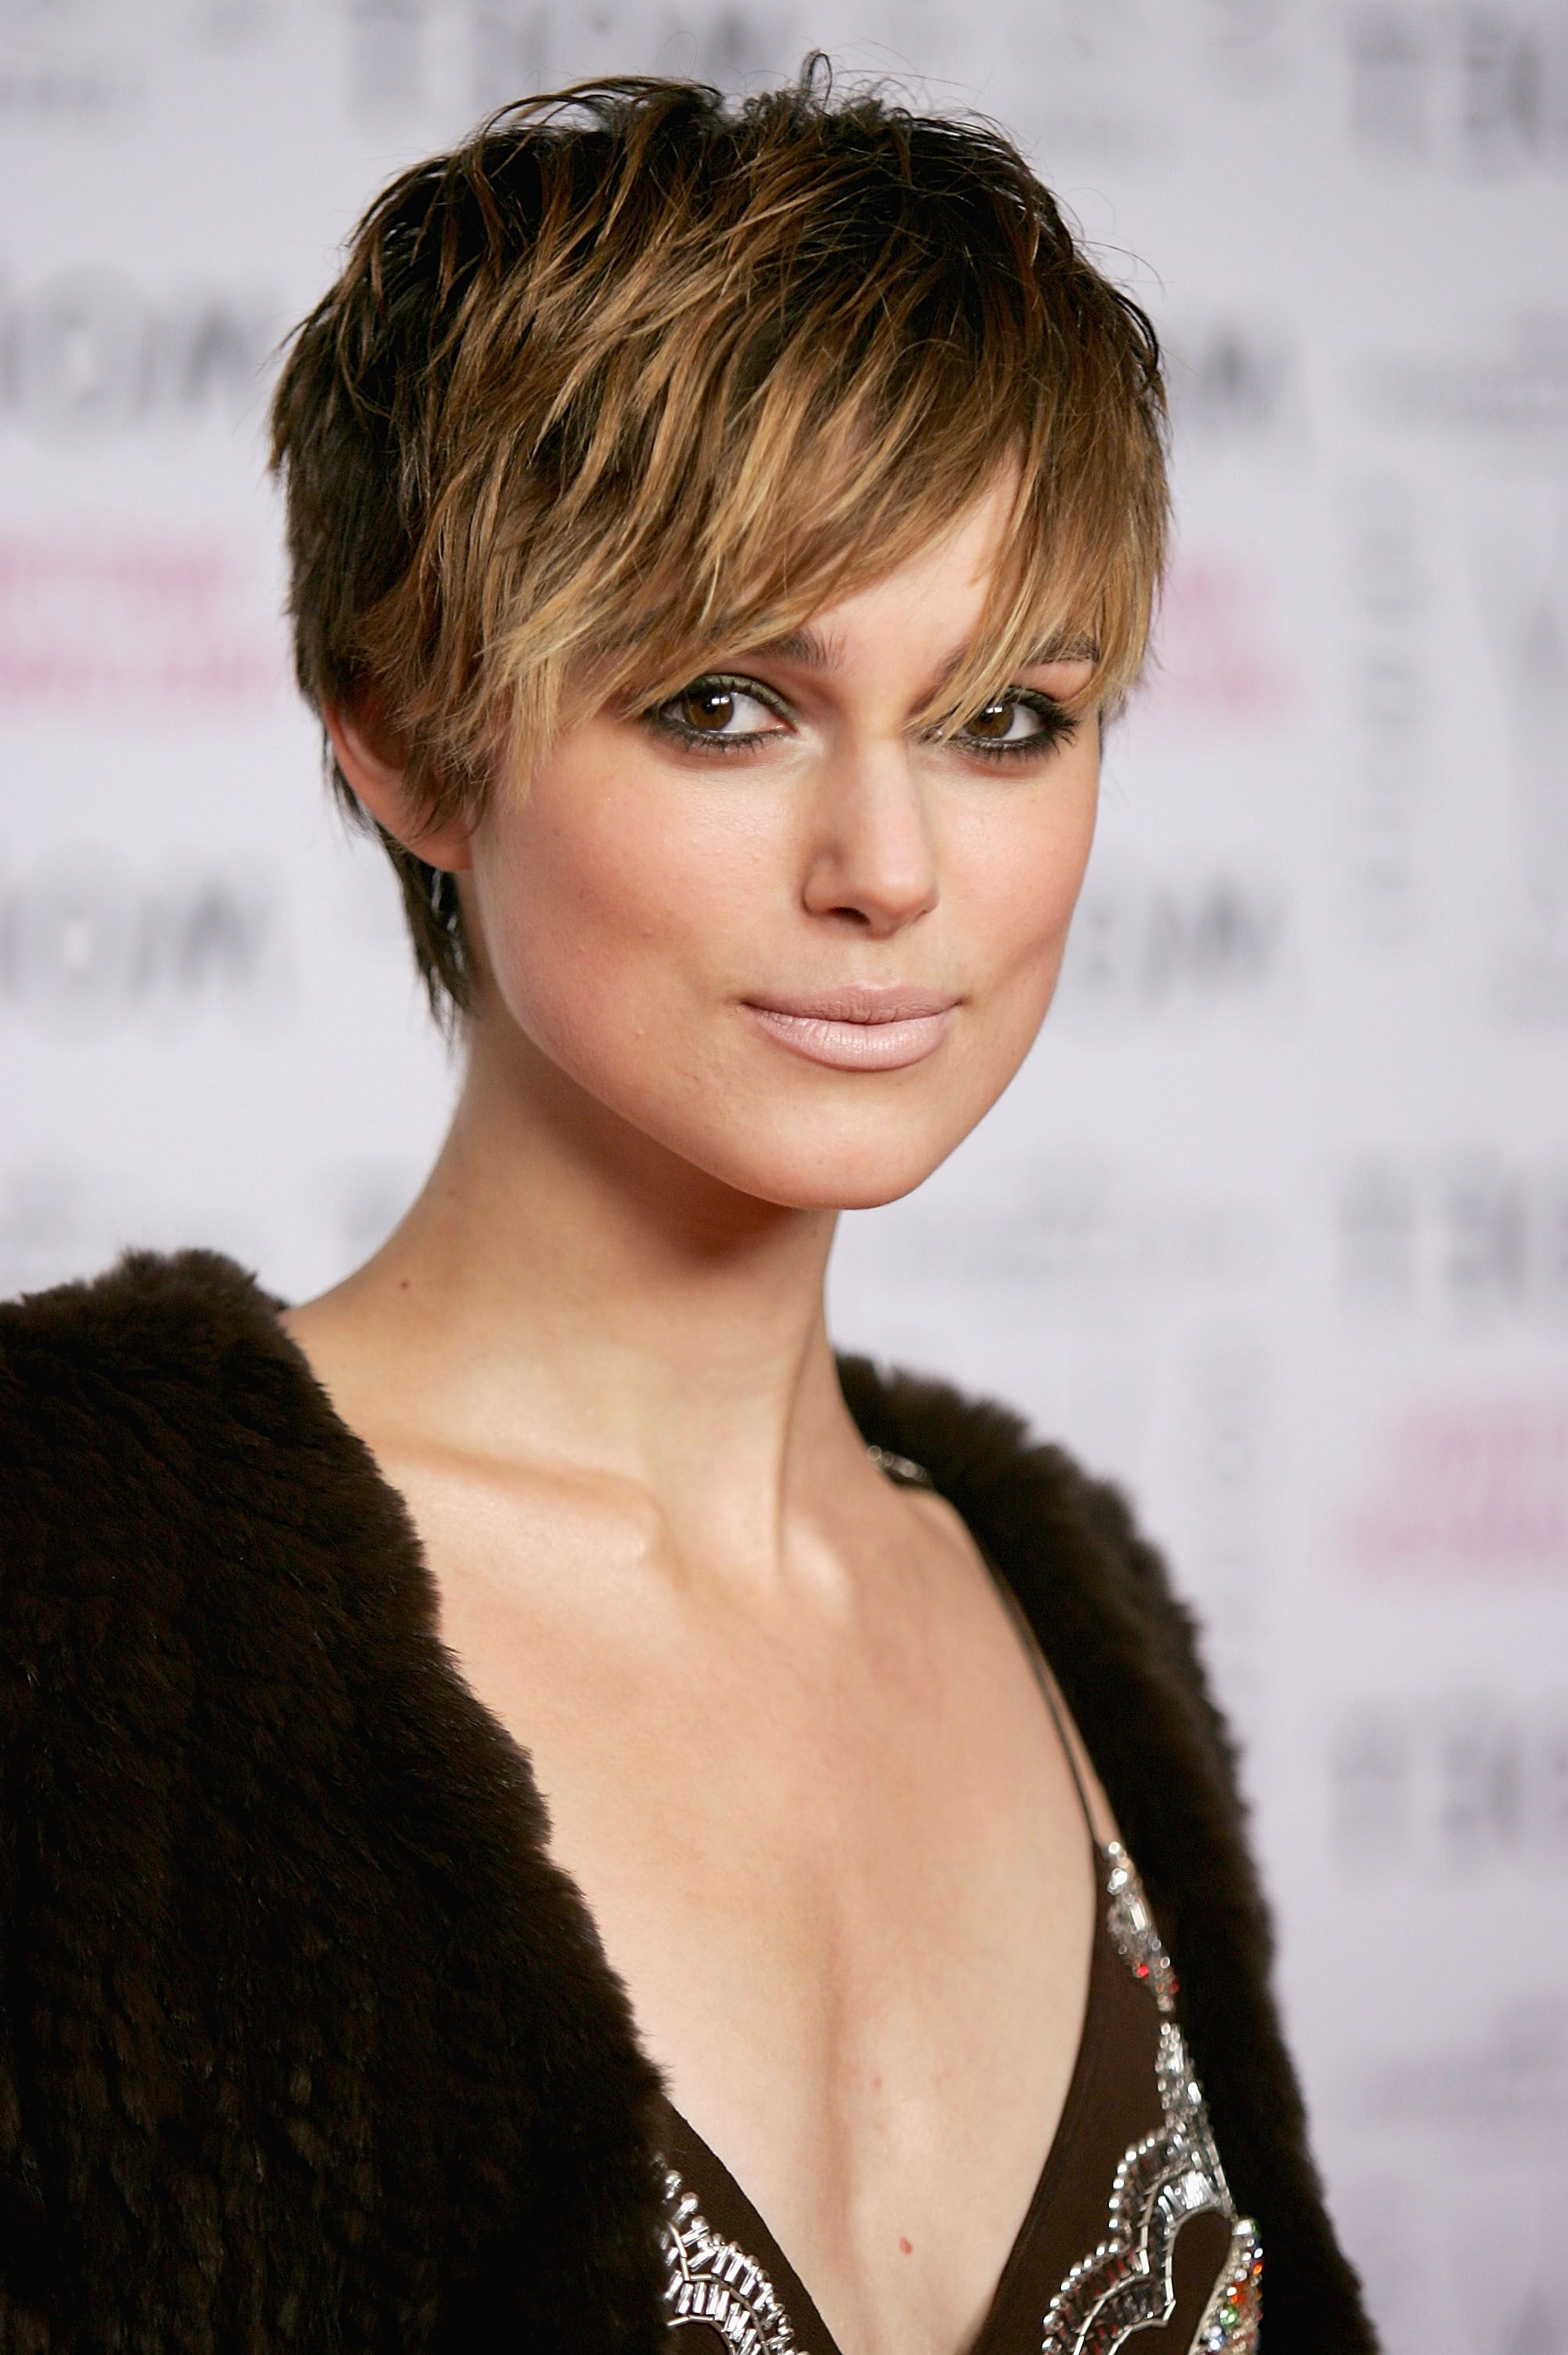 53 Best Pixie Cut Hairstyle Ideas 2018 – Cute Celebrity Pixie Haircuts In Wavy Messy Pixie Hairstyles With Bangs (View 24 of 25)